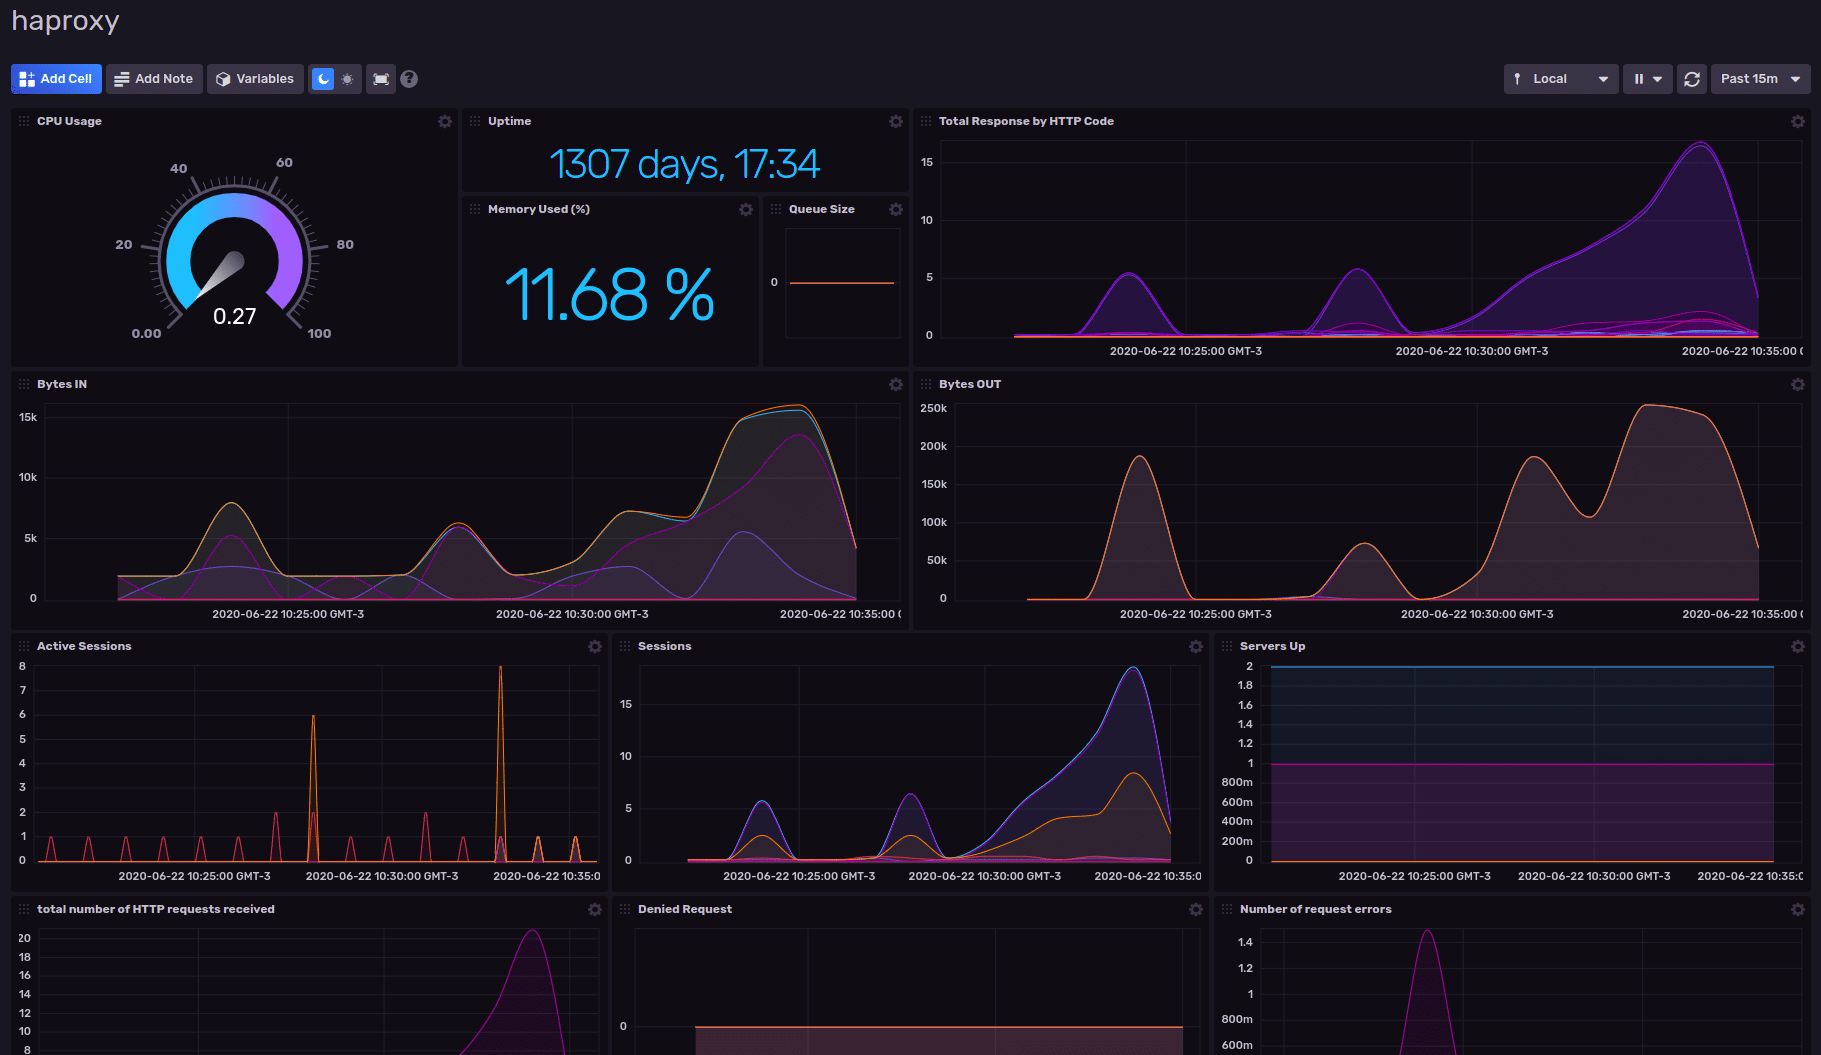 HAProxy Monitoring Dashboard